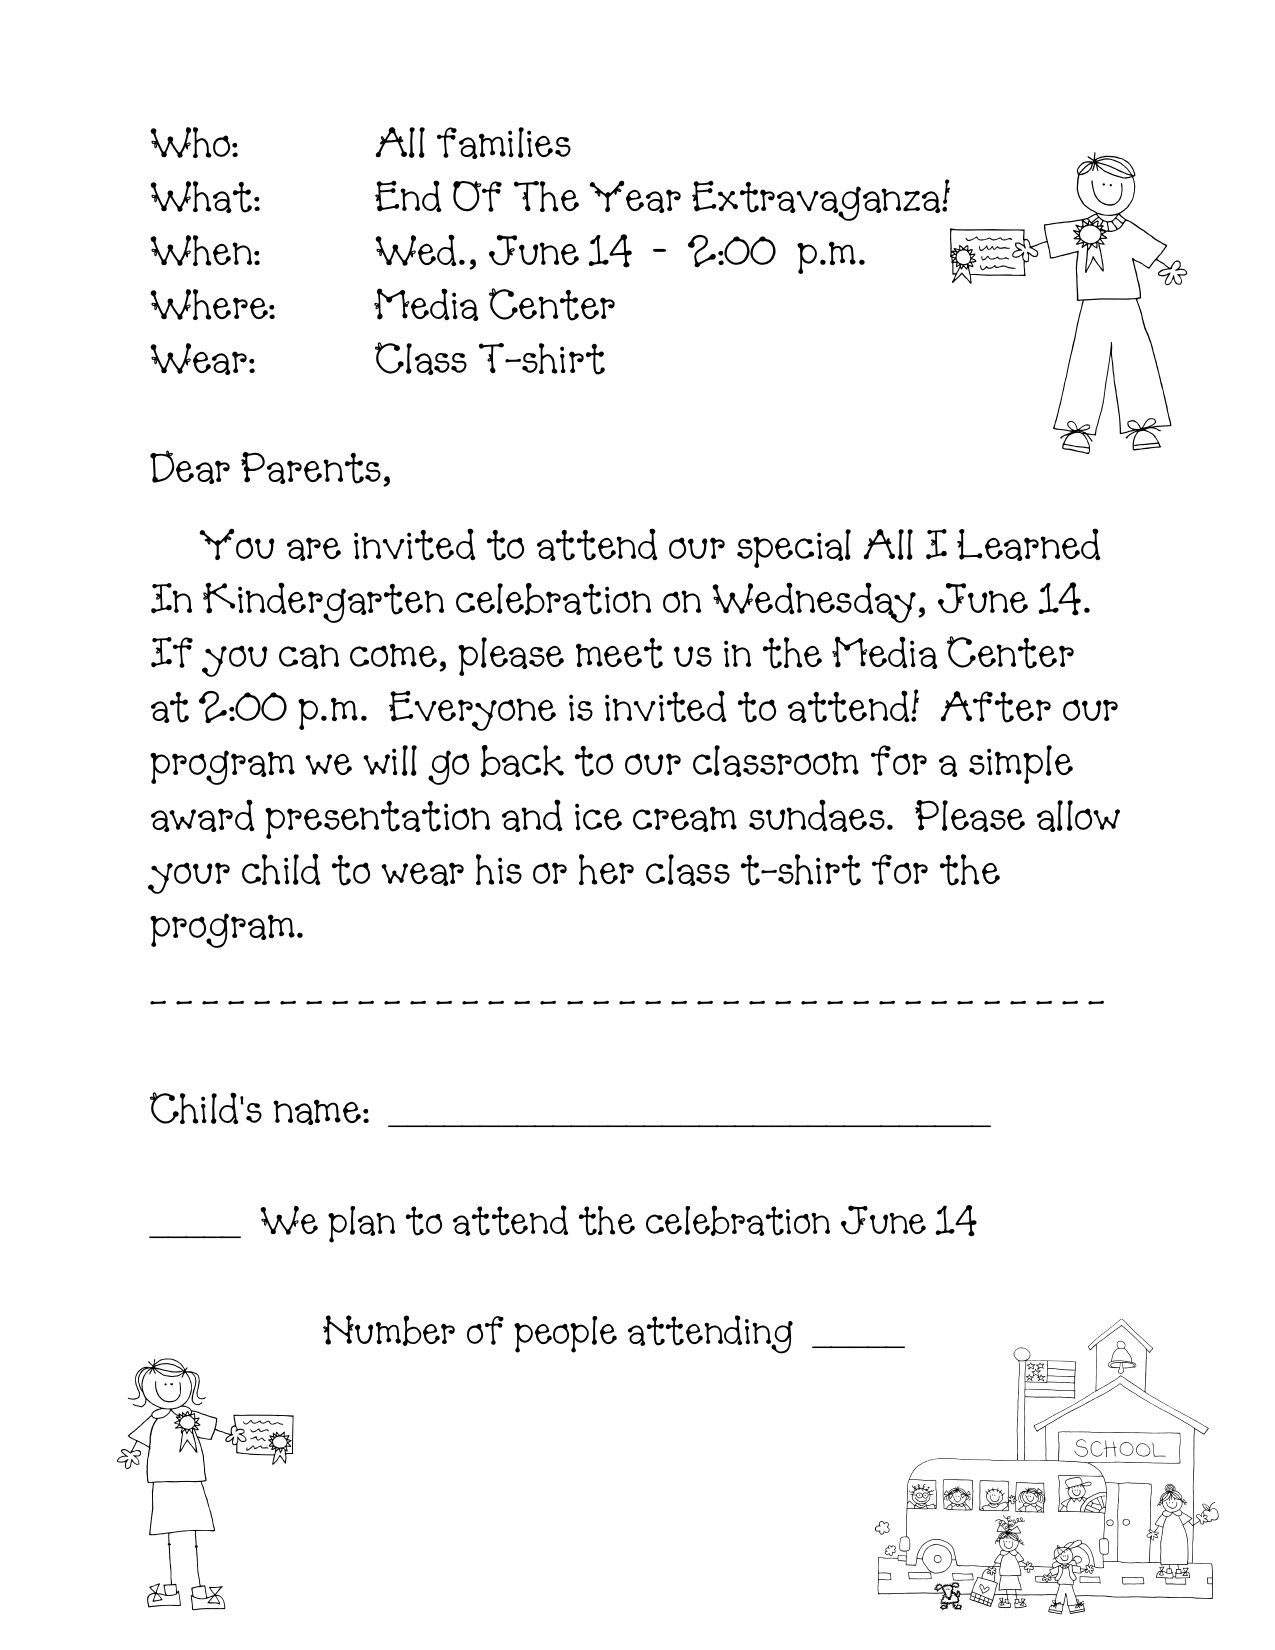 summer camp letter to parents template Collection-preschool graduation program sample Google Search 5-n